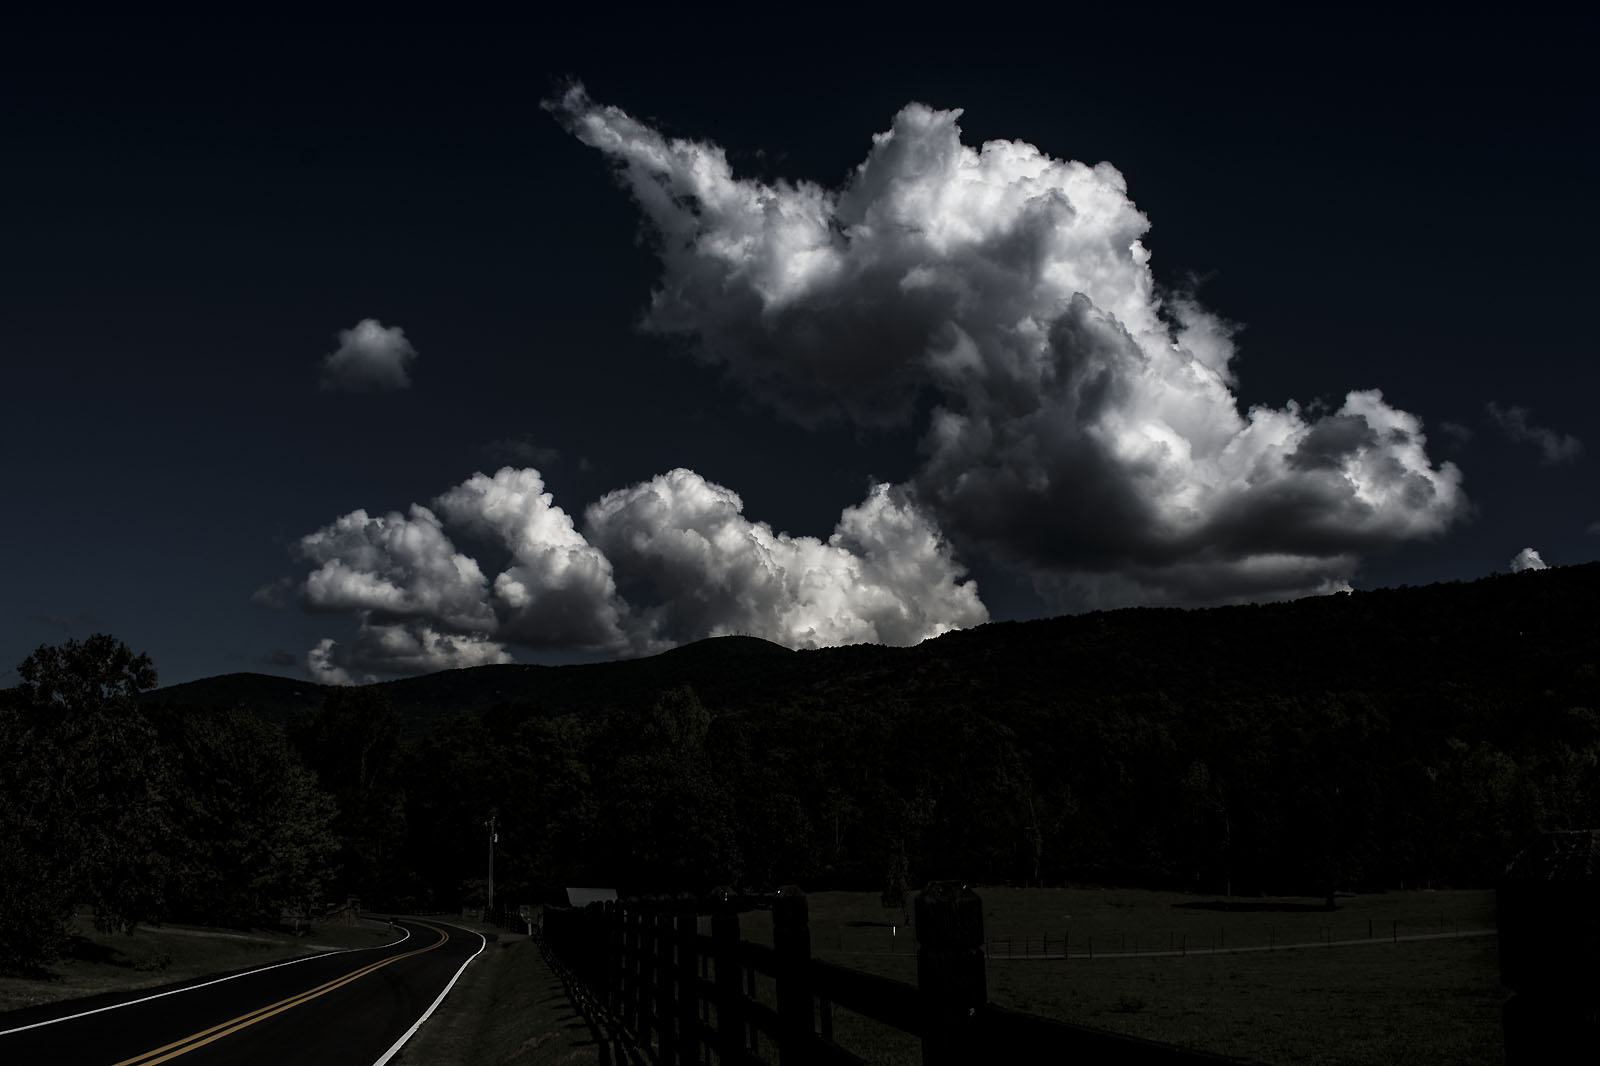 Cloudscape photograph taken from Salem Church Road, Georgia, USA - image 1397 by Stephen S T Bradley, professional landscape photographer UK and USA.